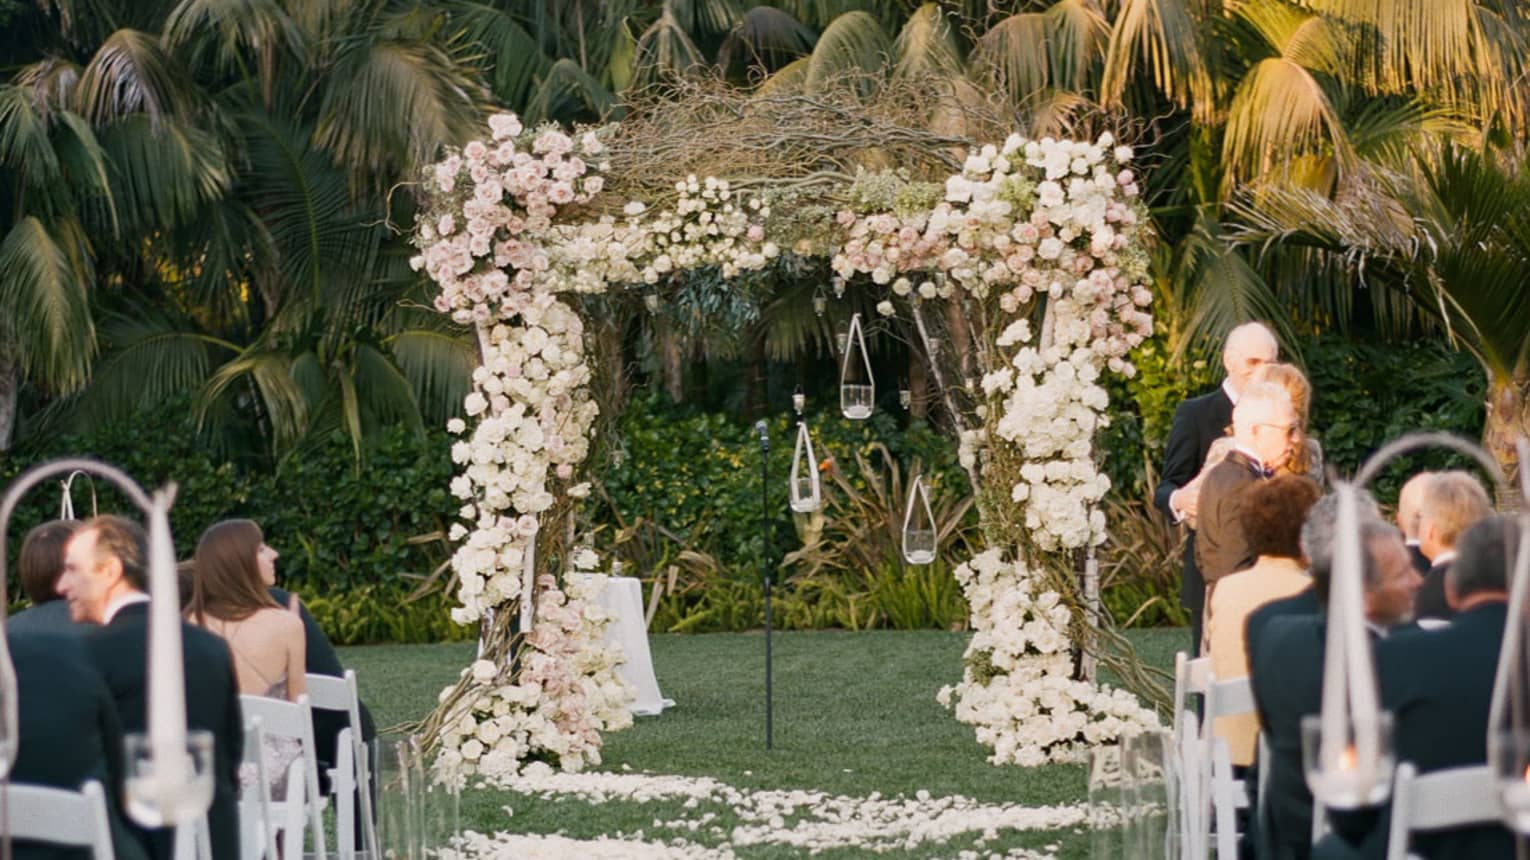 Wedding ceremony on lawn, guests in chairs facing flower-covered altar